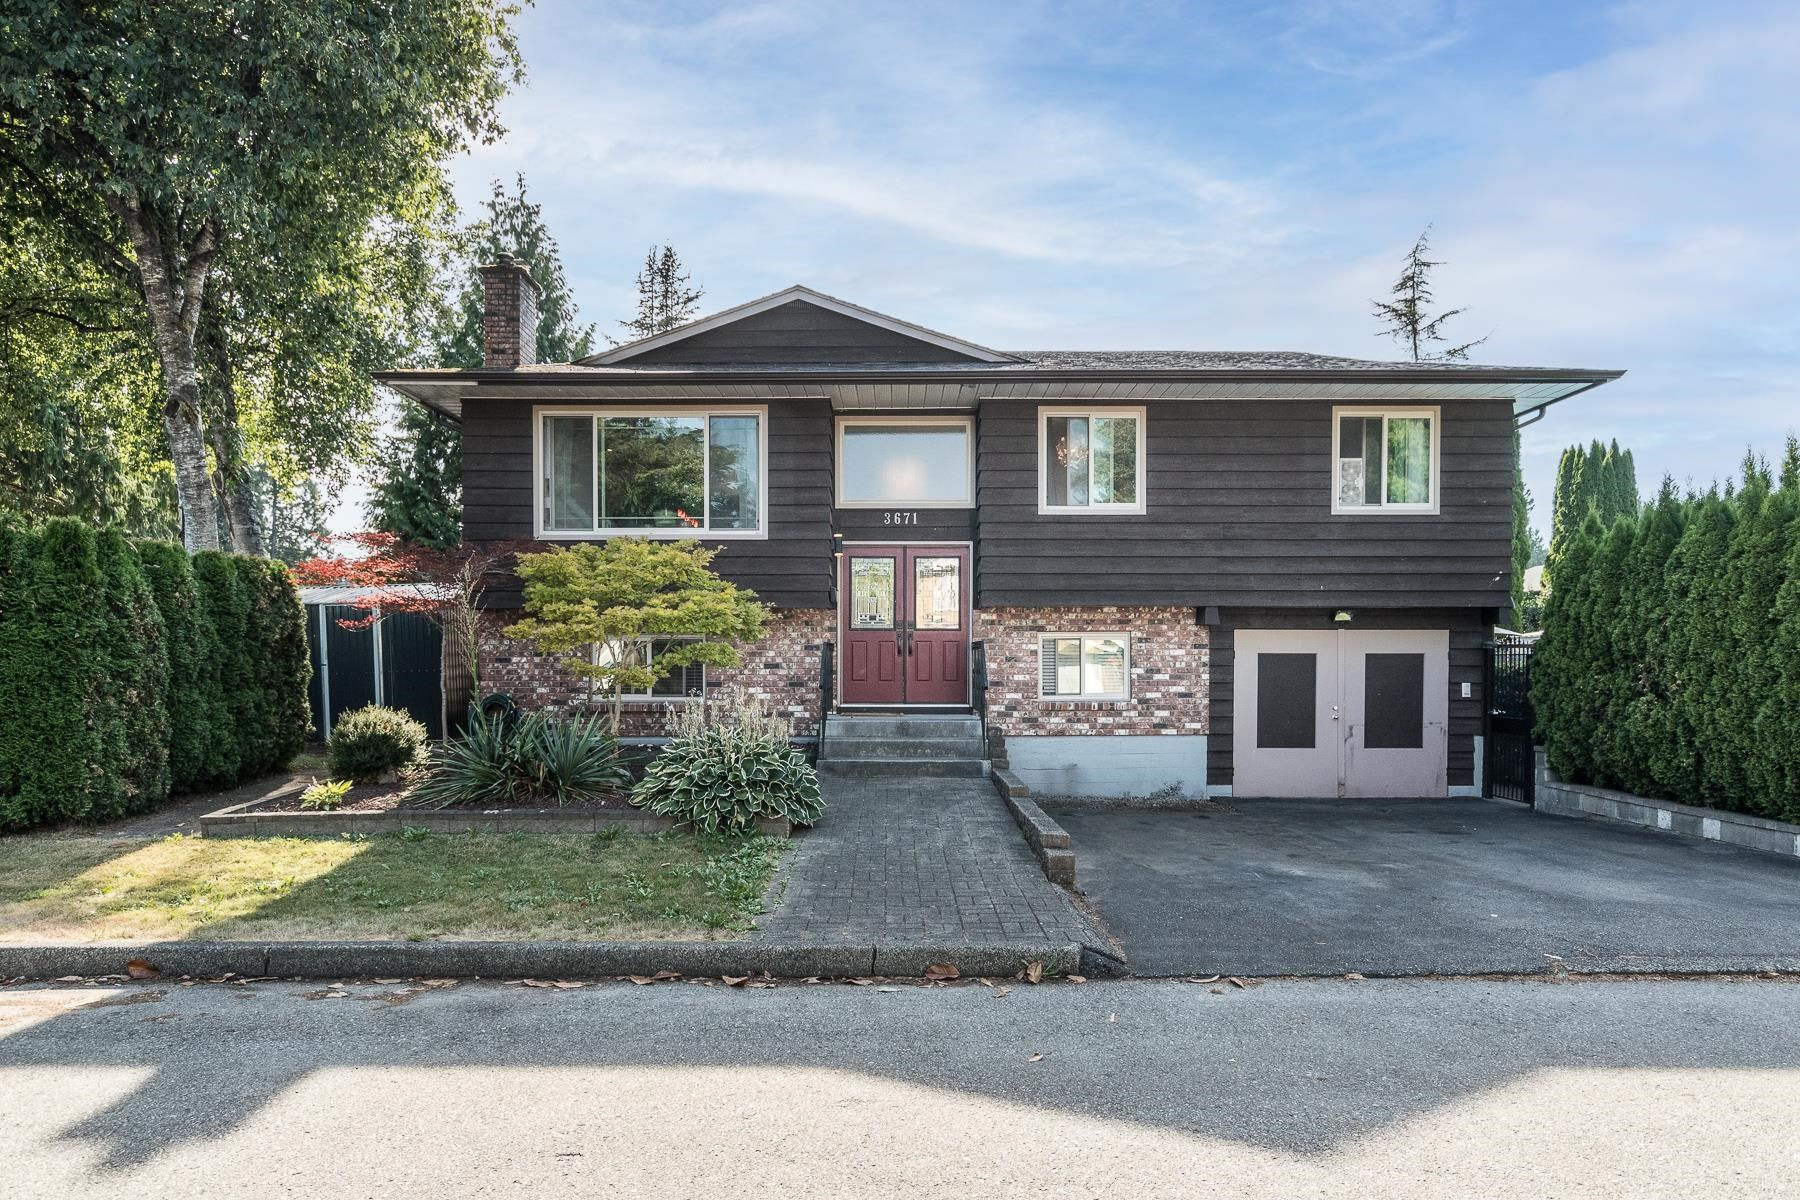 Photo 1: Photos: 3671 SOMERSET Street in Port Coquitlam: Lincoln Park PQ House for sale : MLS®# R2610216